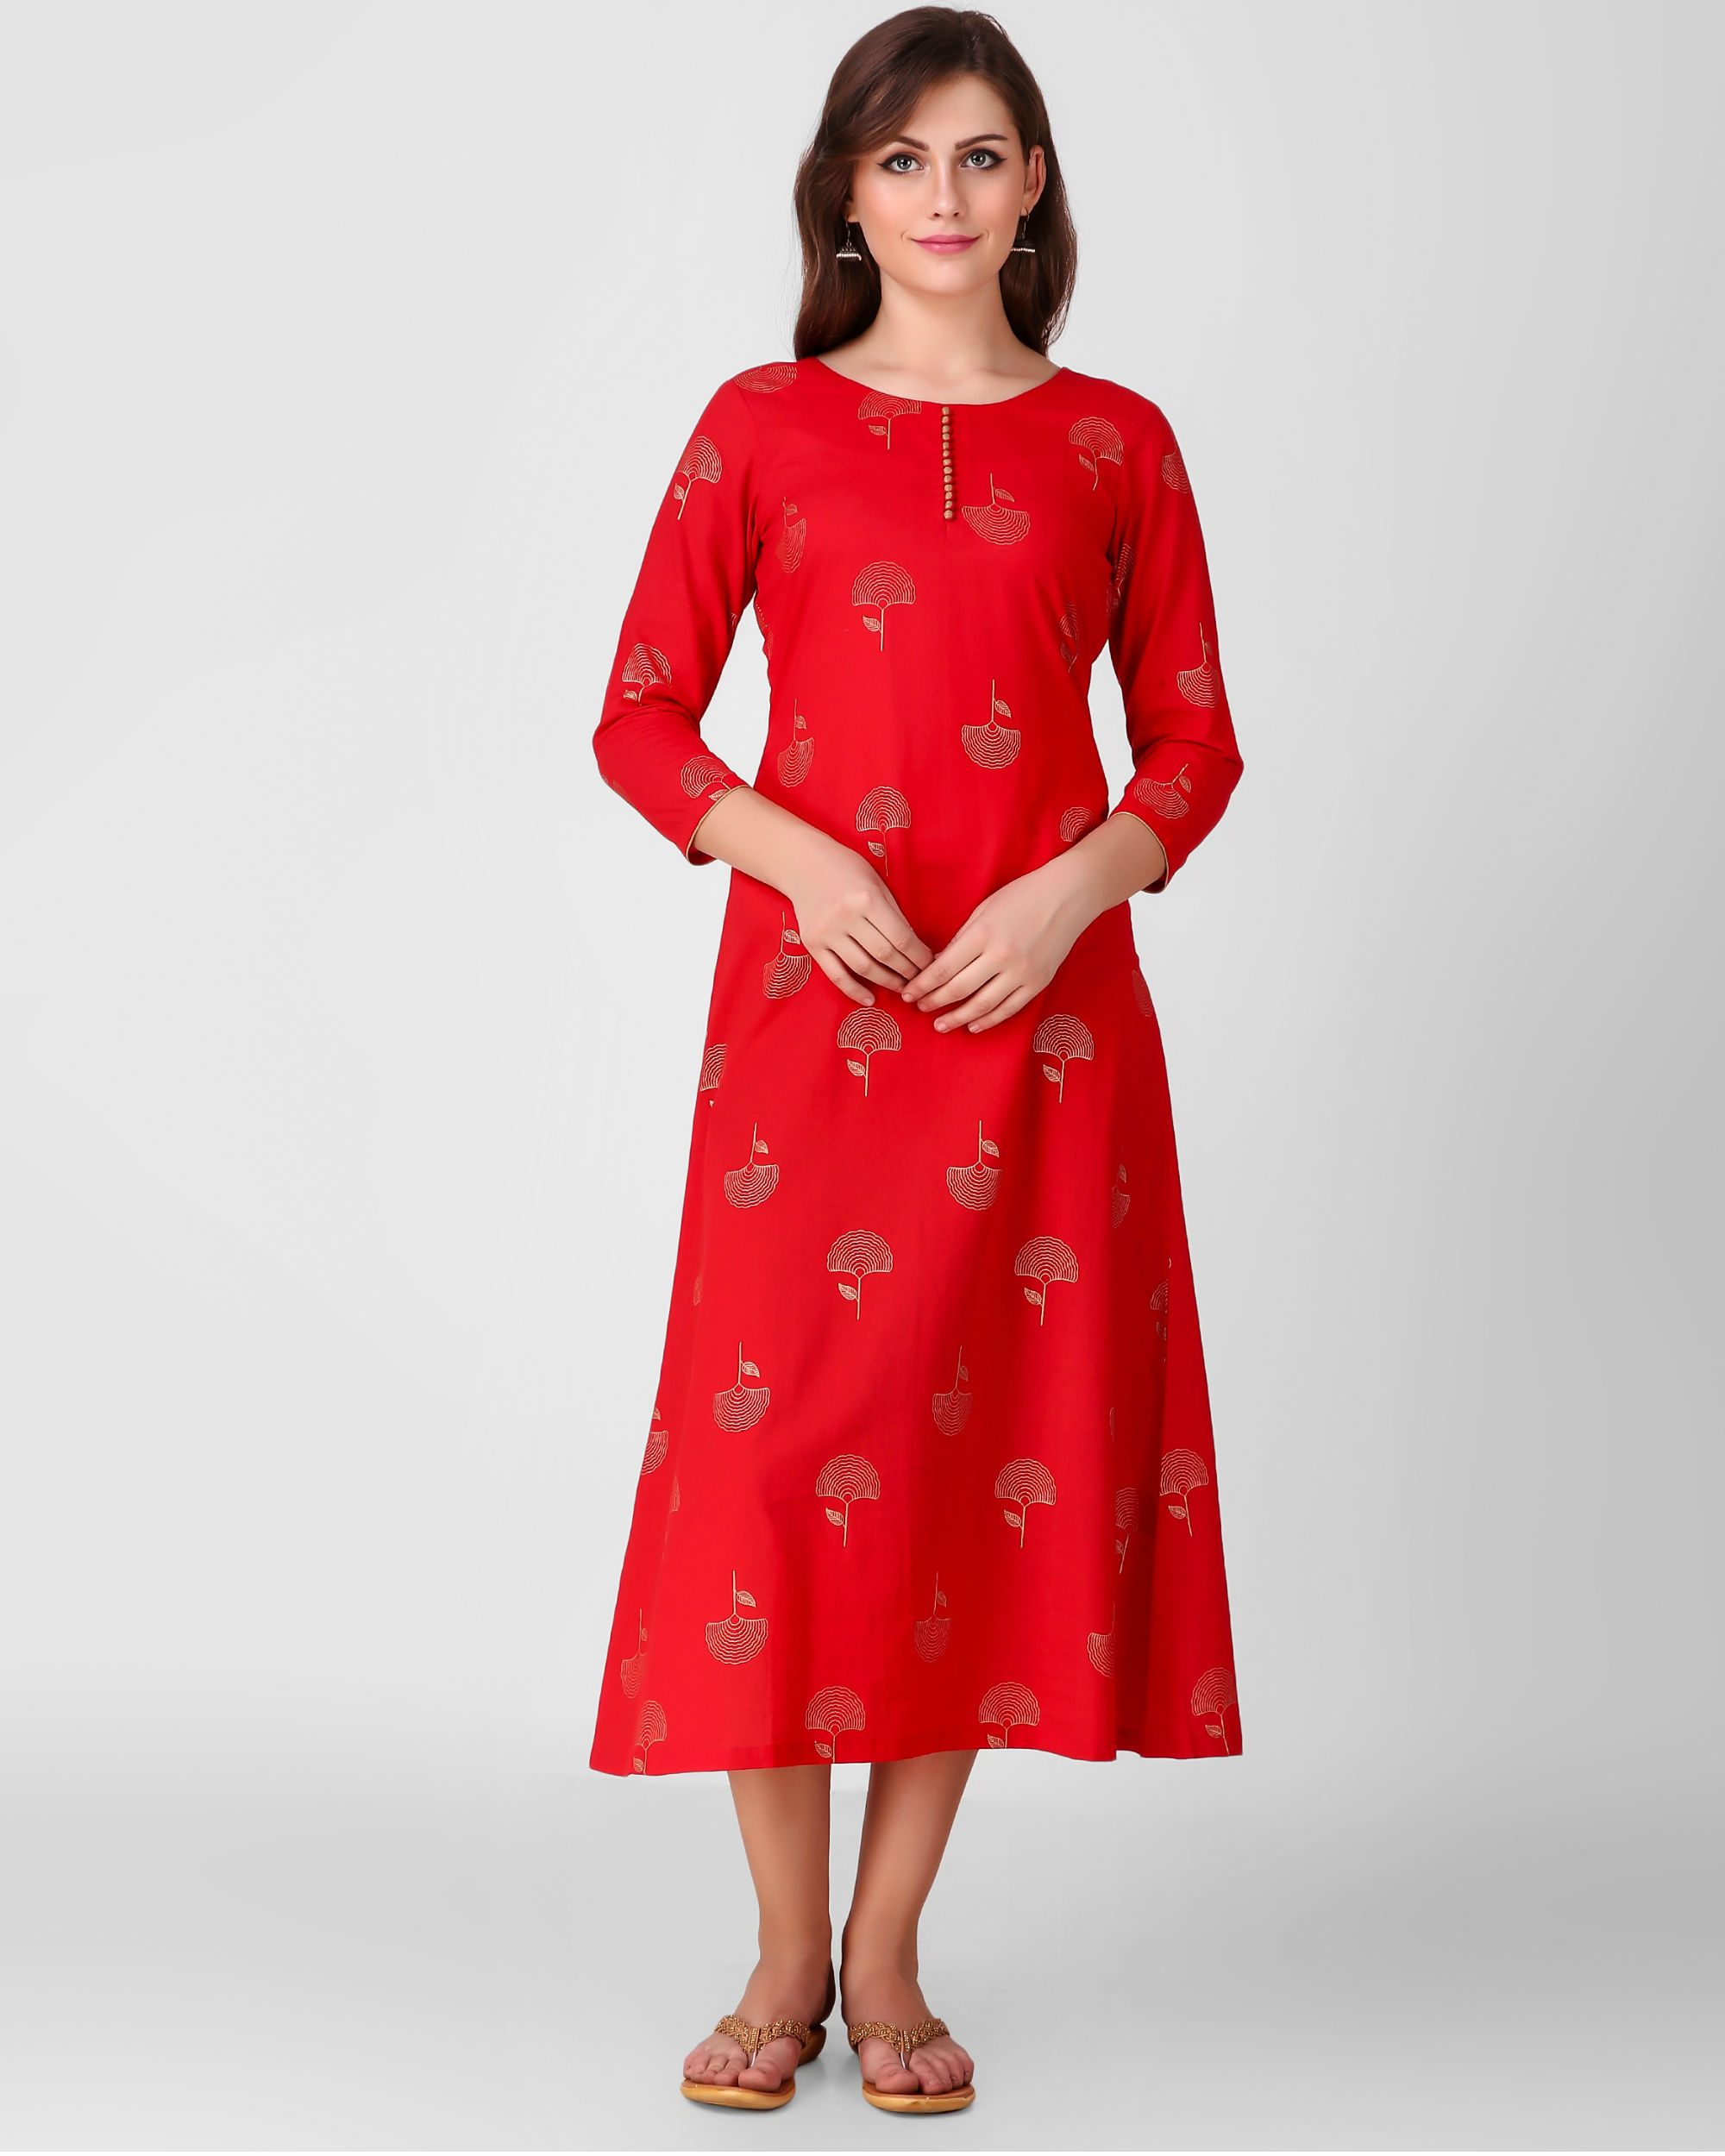 Red golden daffodil print dress